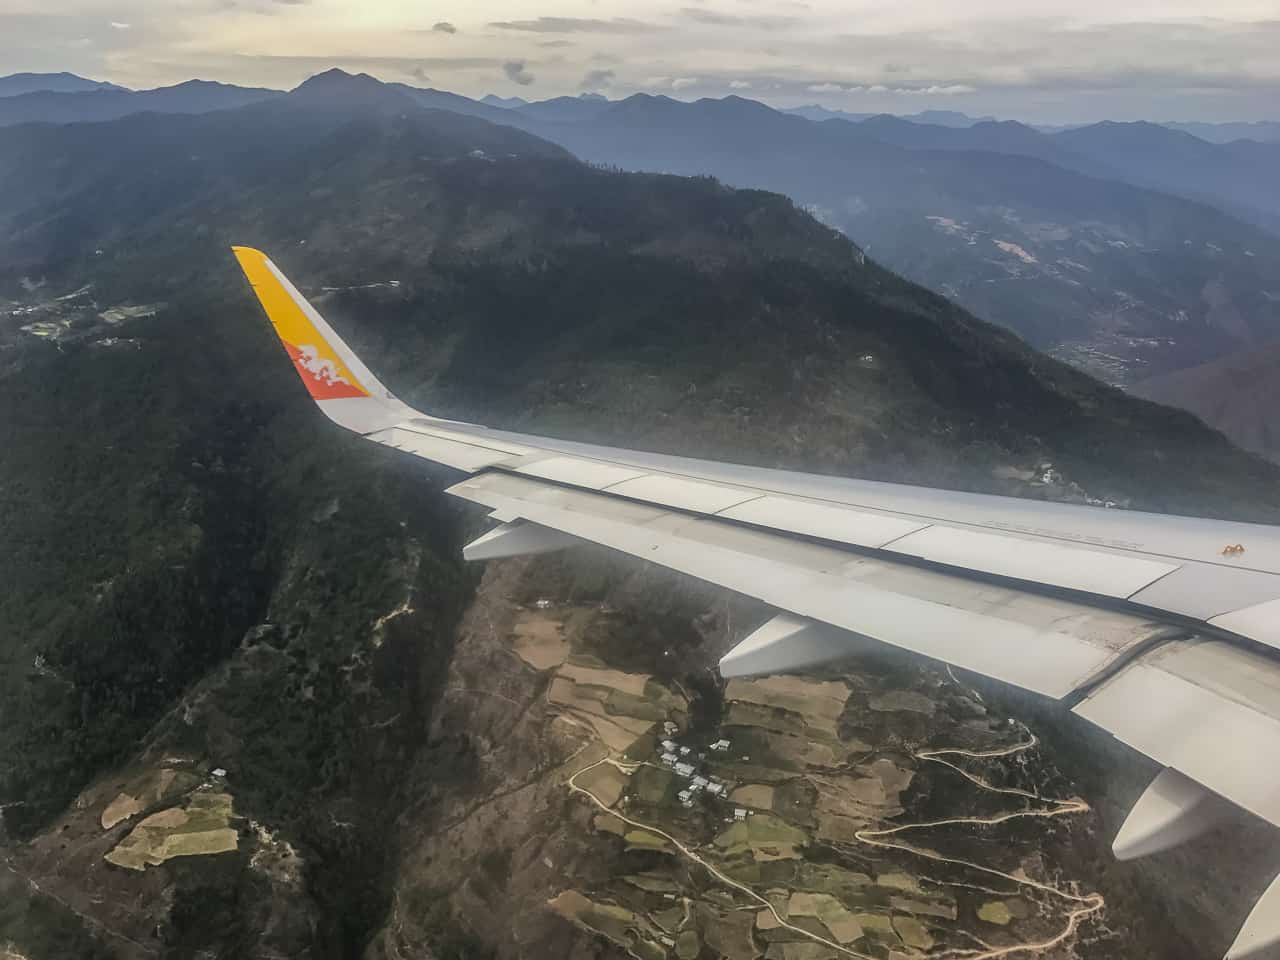 Flying int Paro to start our Bhutan Trek to Laya